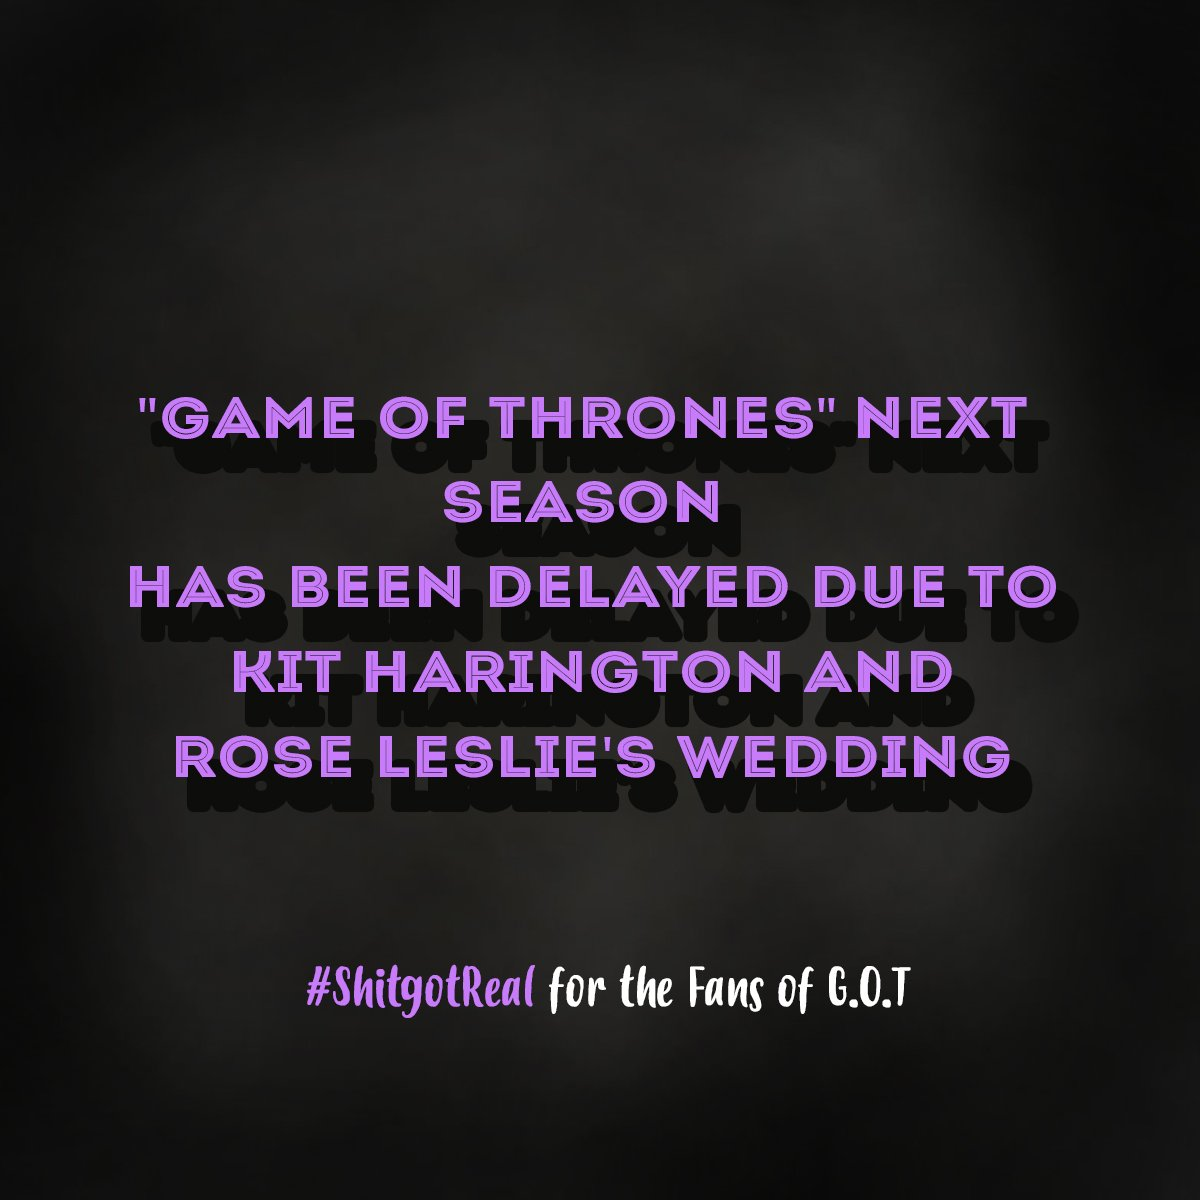 &quot;Game of Thrones is very likely to return in 2019, not 2018&quot; #ShitGotReal #GOT #WeddingBells #Game8 #Season8 #GameOfThrones <br>http://pic.twitter.com/YojnHVOl4F